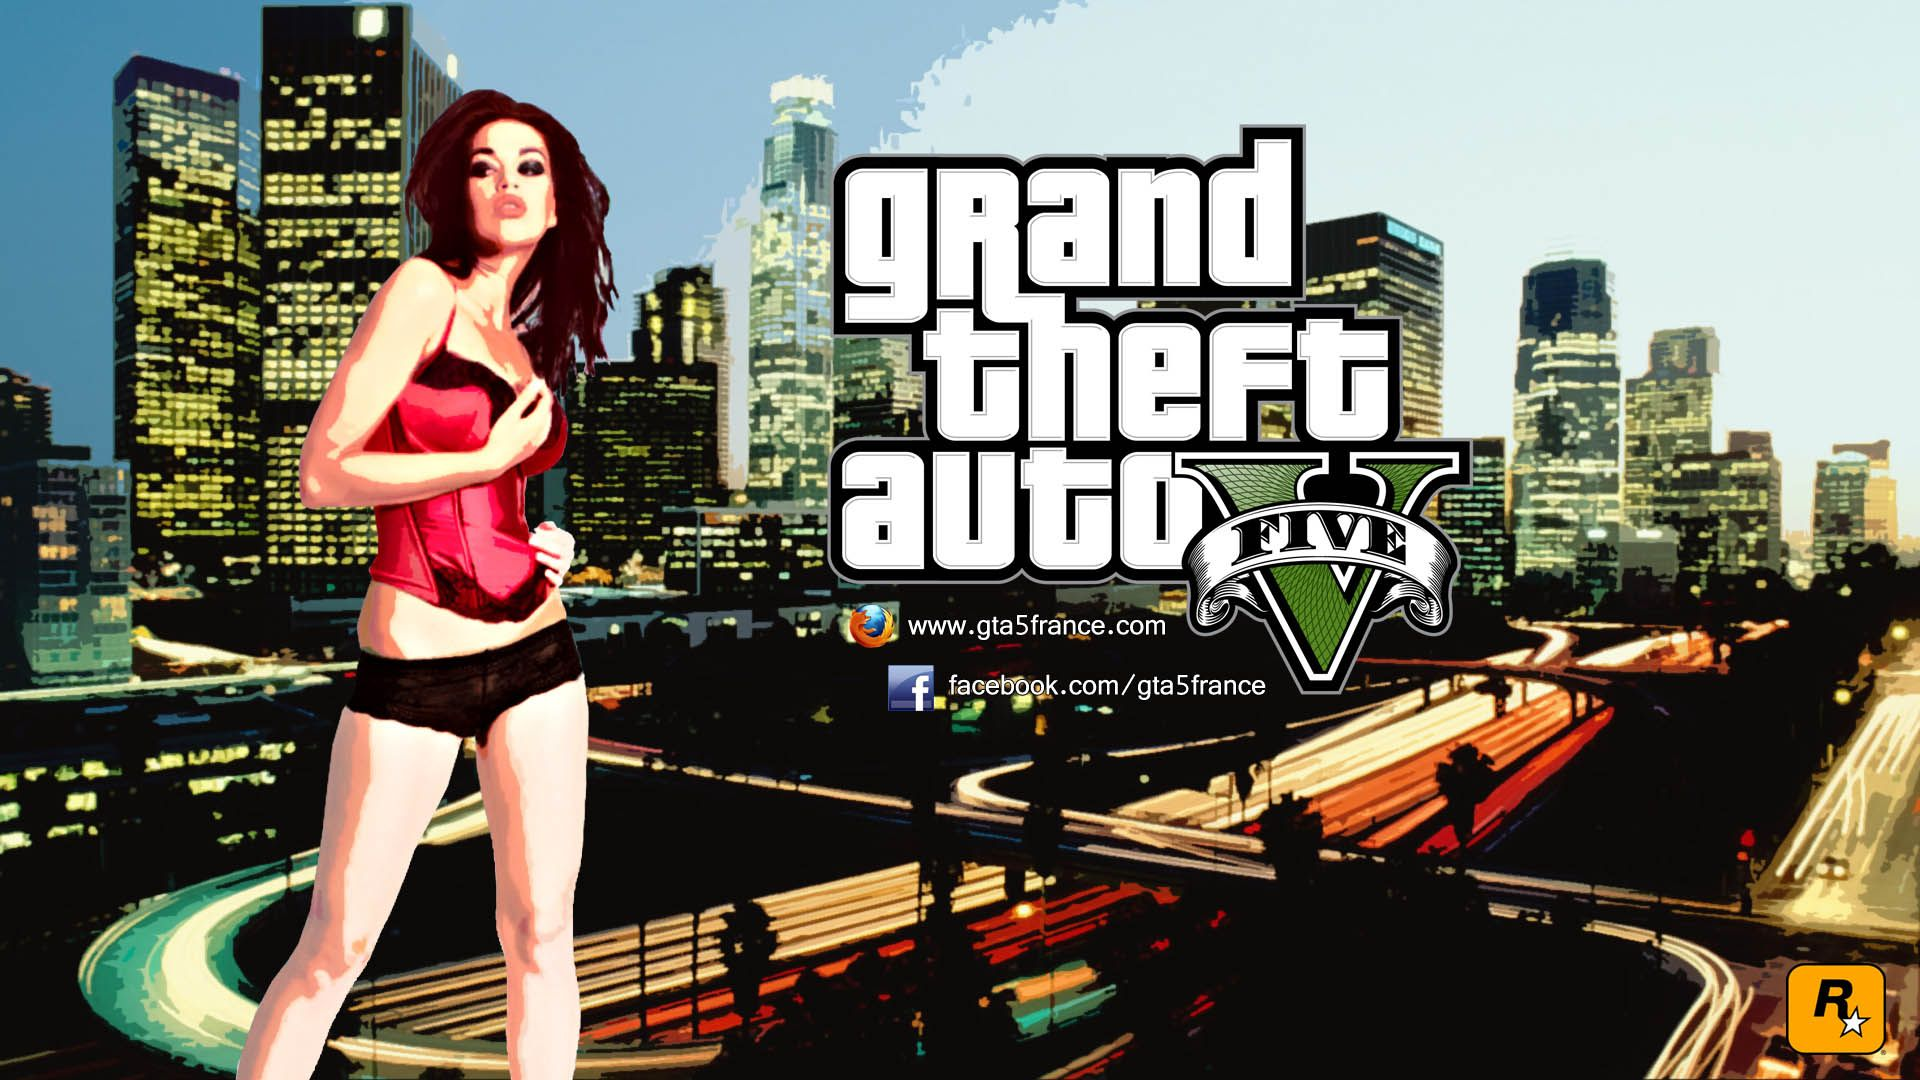 Free Download Grand Theft Auto GTA 5 HD Wallpaper | Cosas para comprar | Gta, Grand Theft Auto y ...